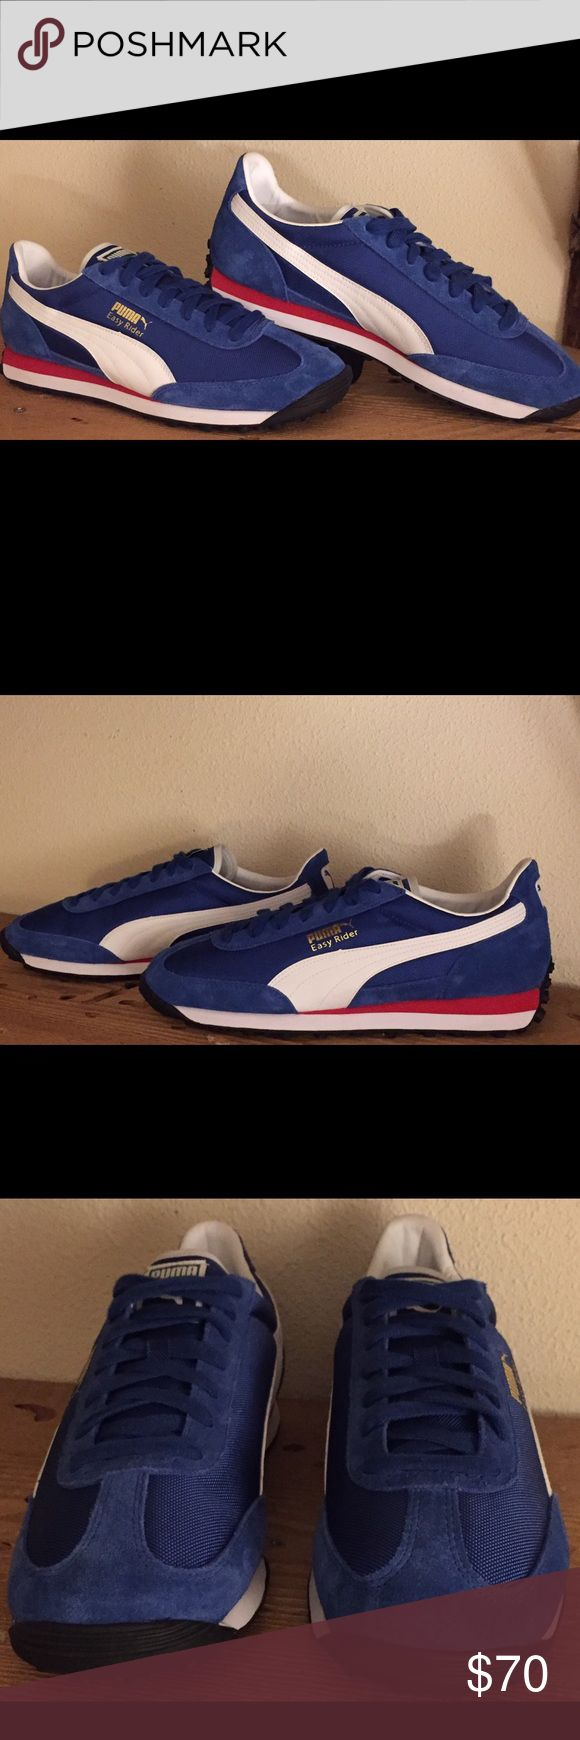 "🚨🚨🎉🎉🚨SALE PRICE !! Puma ""Easy Rider"" sneakers 🚨🚨🚨PRICE DROP!! 🚨🚨🚨Mens Puma Sneakers, Easy Rider style, this color way is very popular with collectors. Never worn, perfect condition. Don't miss out on these classics for your collection!  Isn't it amazing how a pair of shoes can immediately take you back to a different time?! So cool Puma Shoes Sneakers"